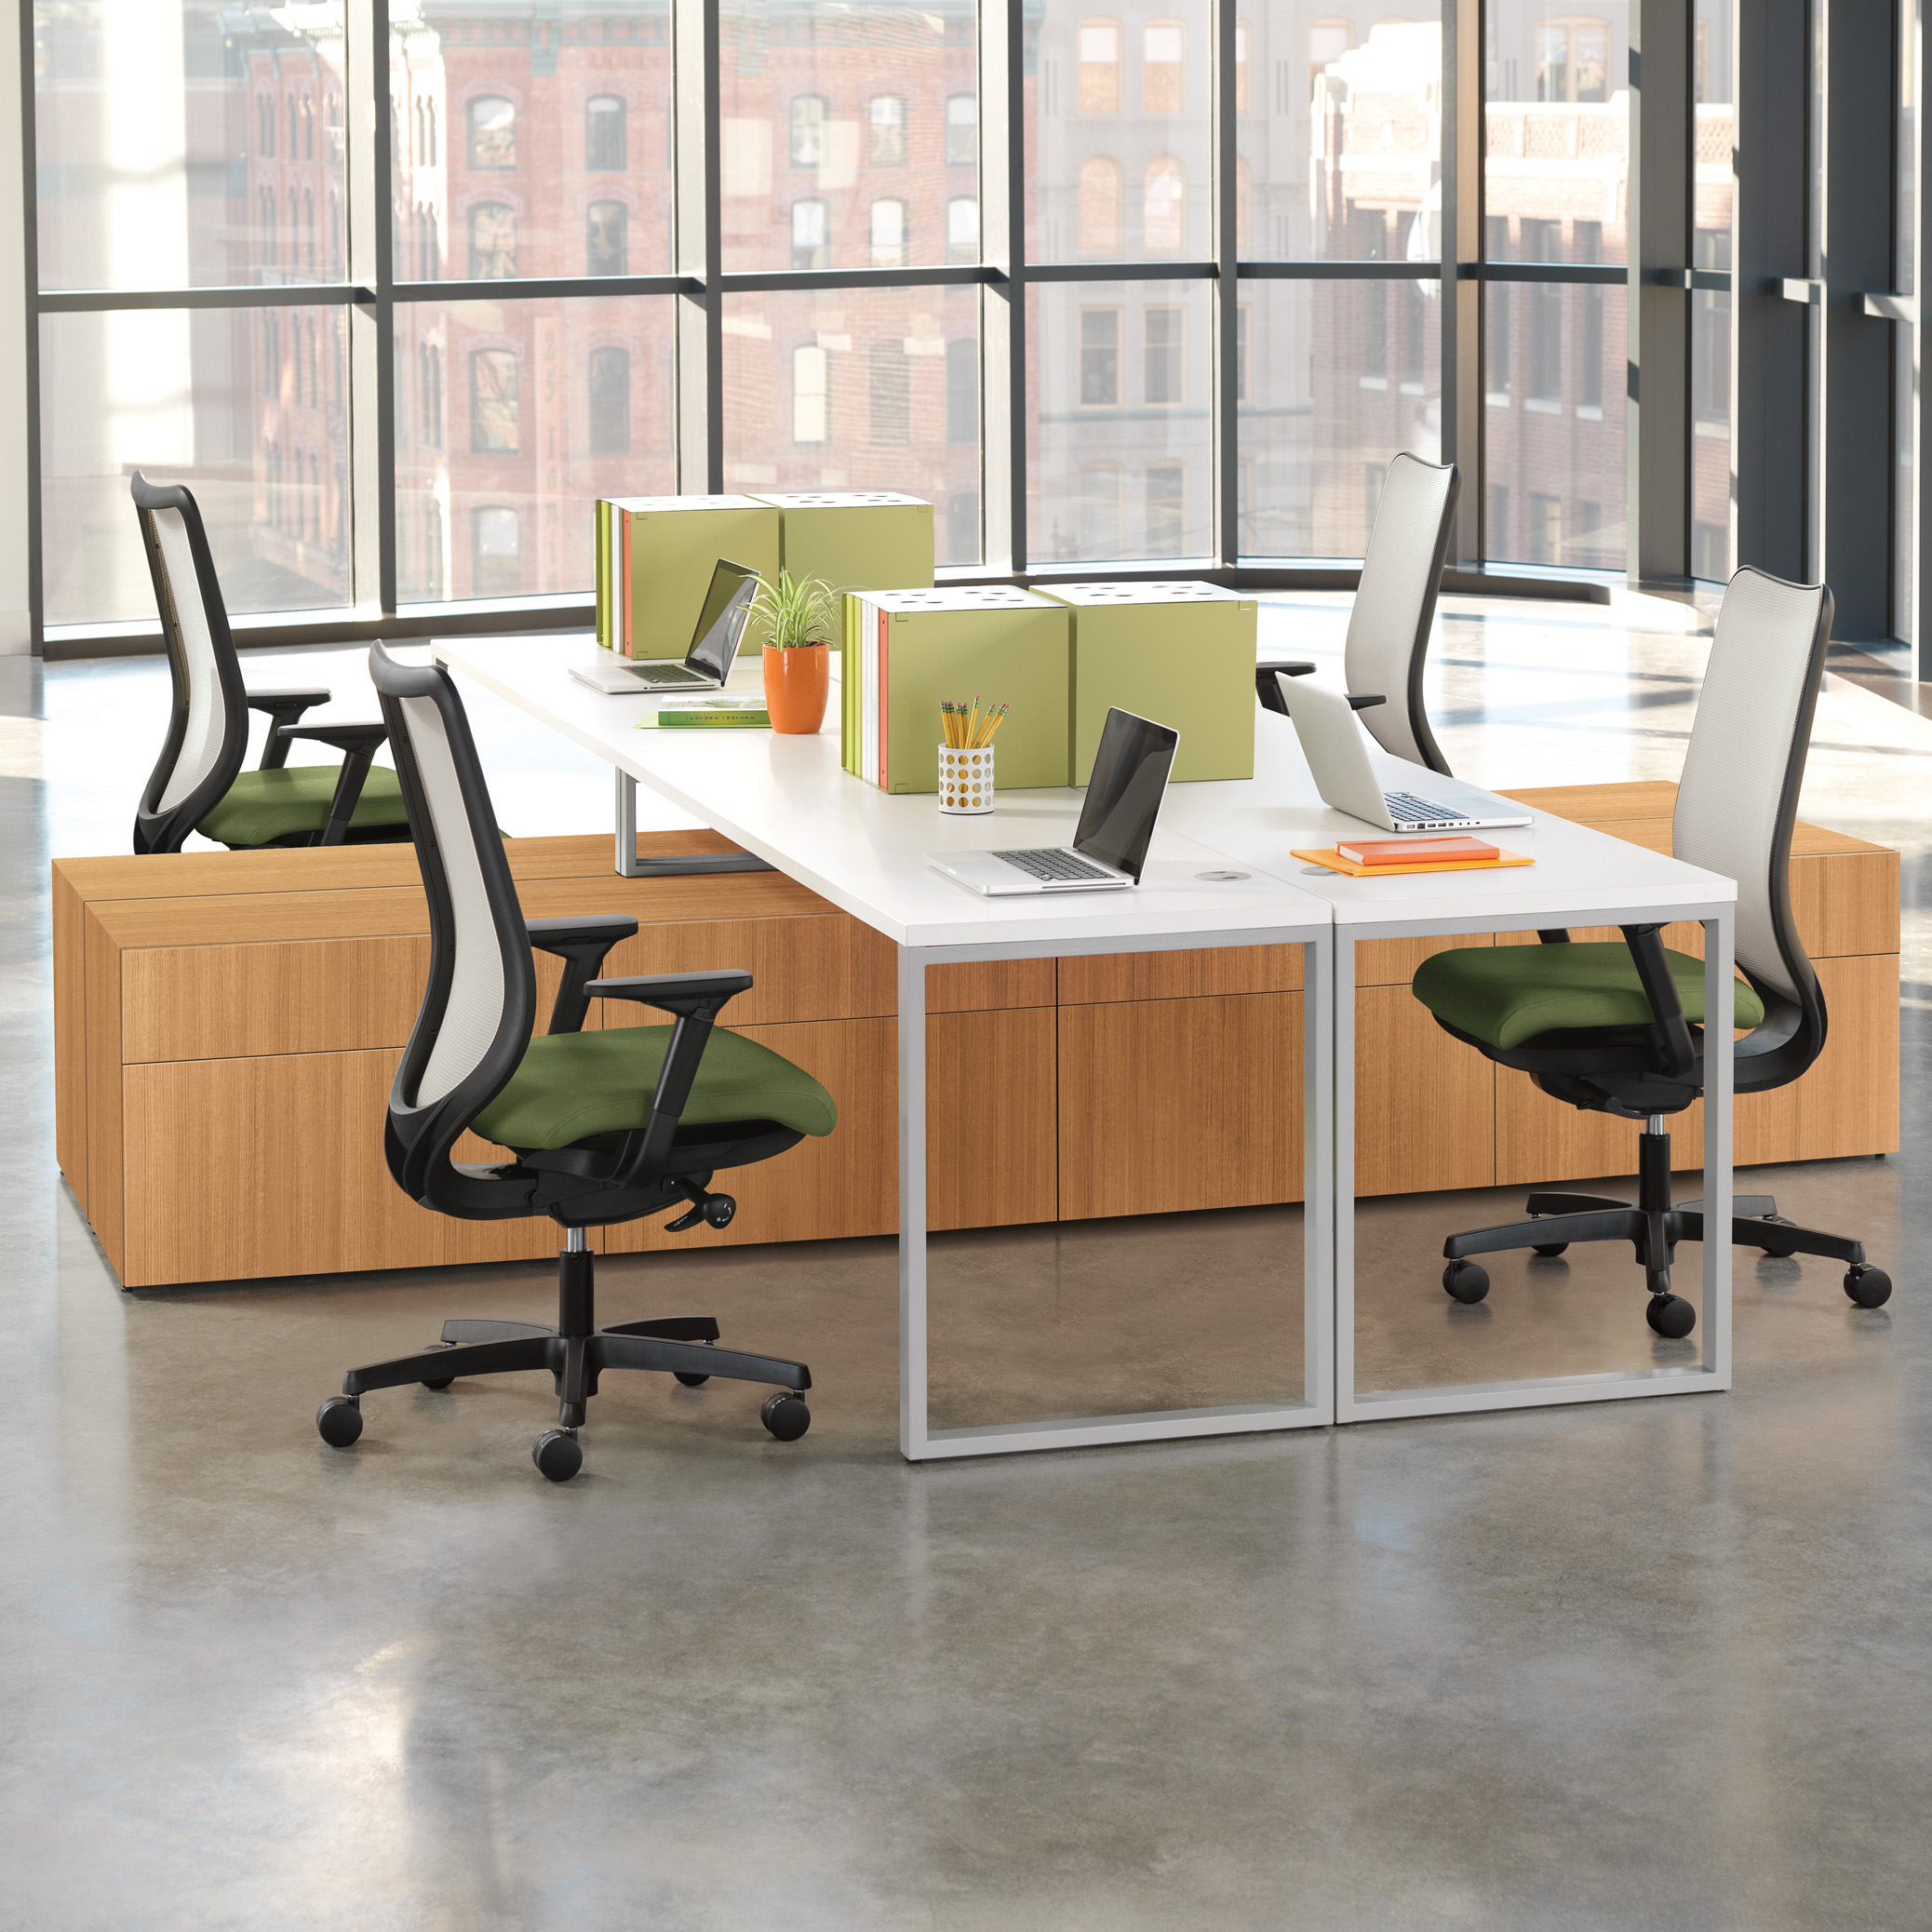 Voi Systems Office Furniture Chicago New Rental Used Desks Cubicles Chairs